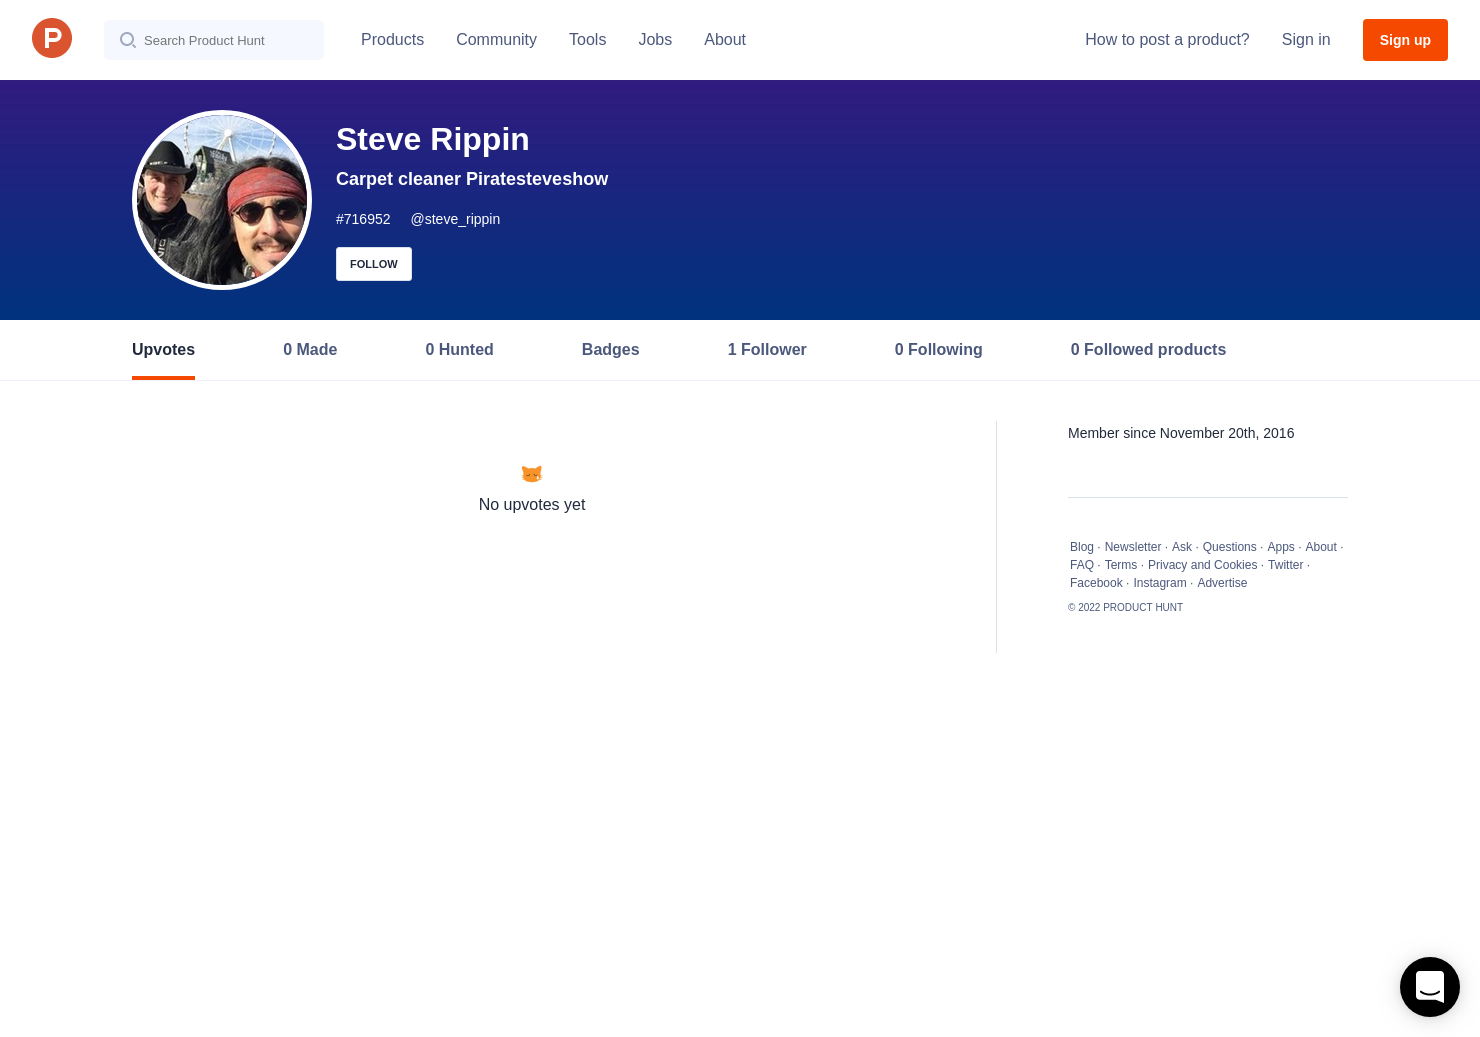 Steve Rippin S Profile On Product Hunt